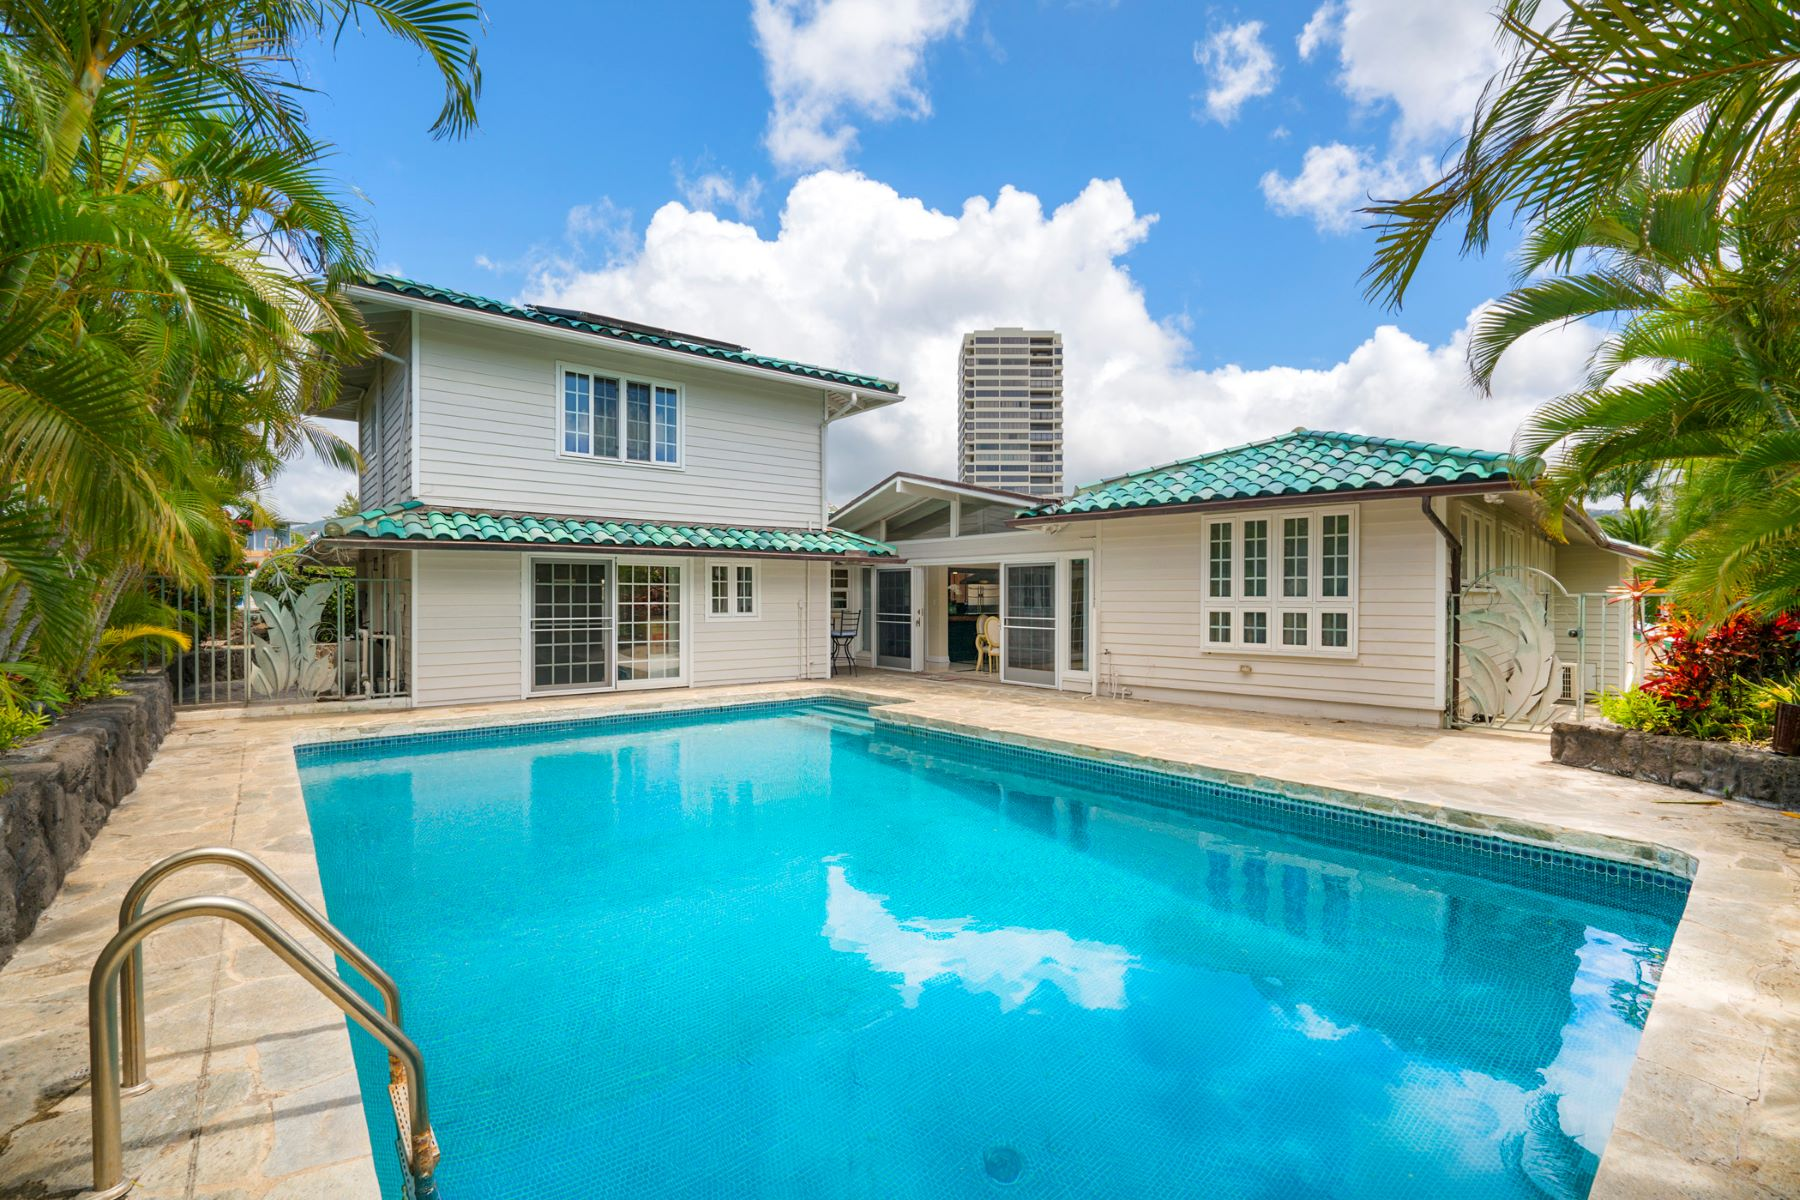 Single Family Home for Sale at Sunny Kahala Escape 1344 Pueo Street Honolulu, Hawaii 96816 United StatesIn/Around: Kahala